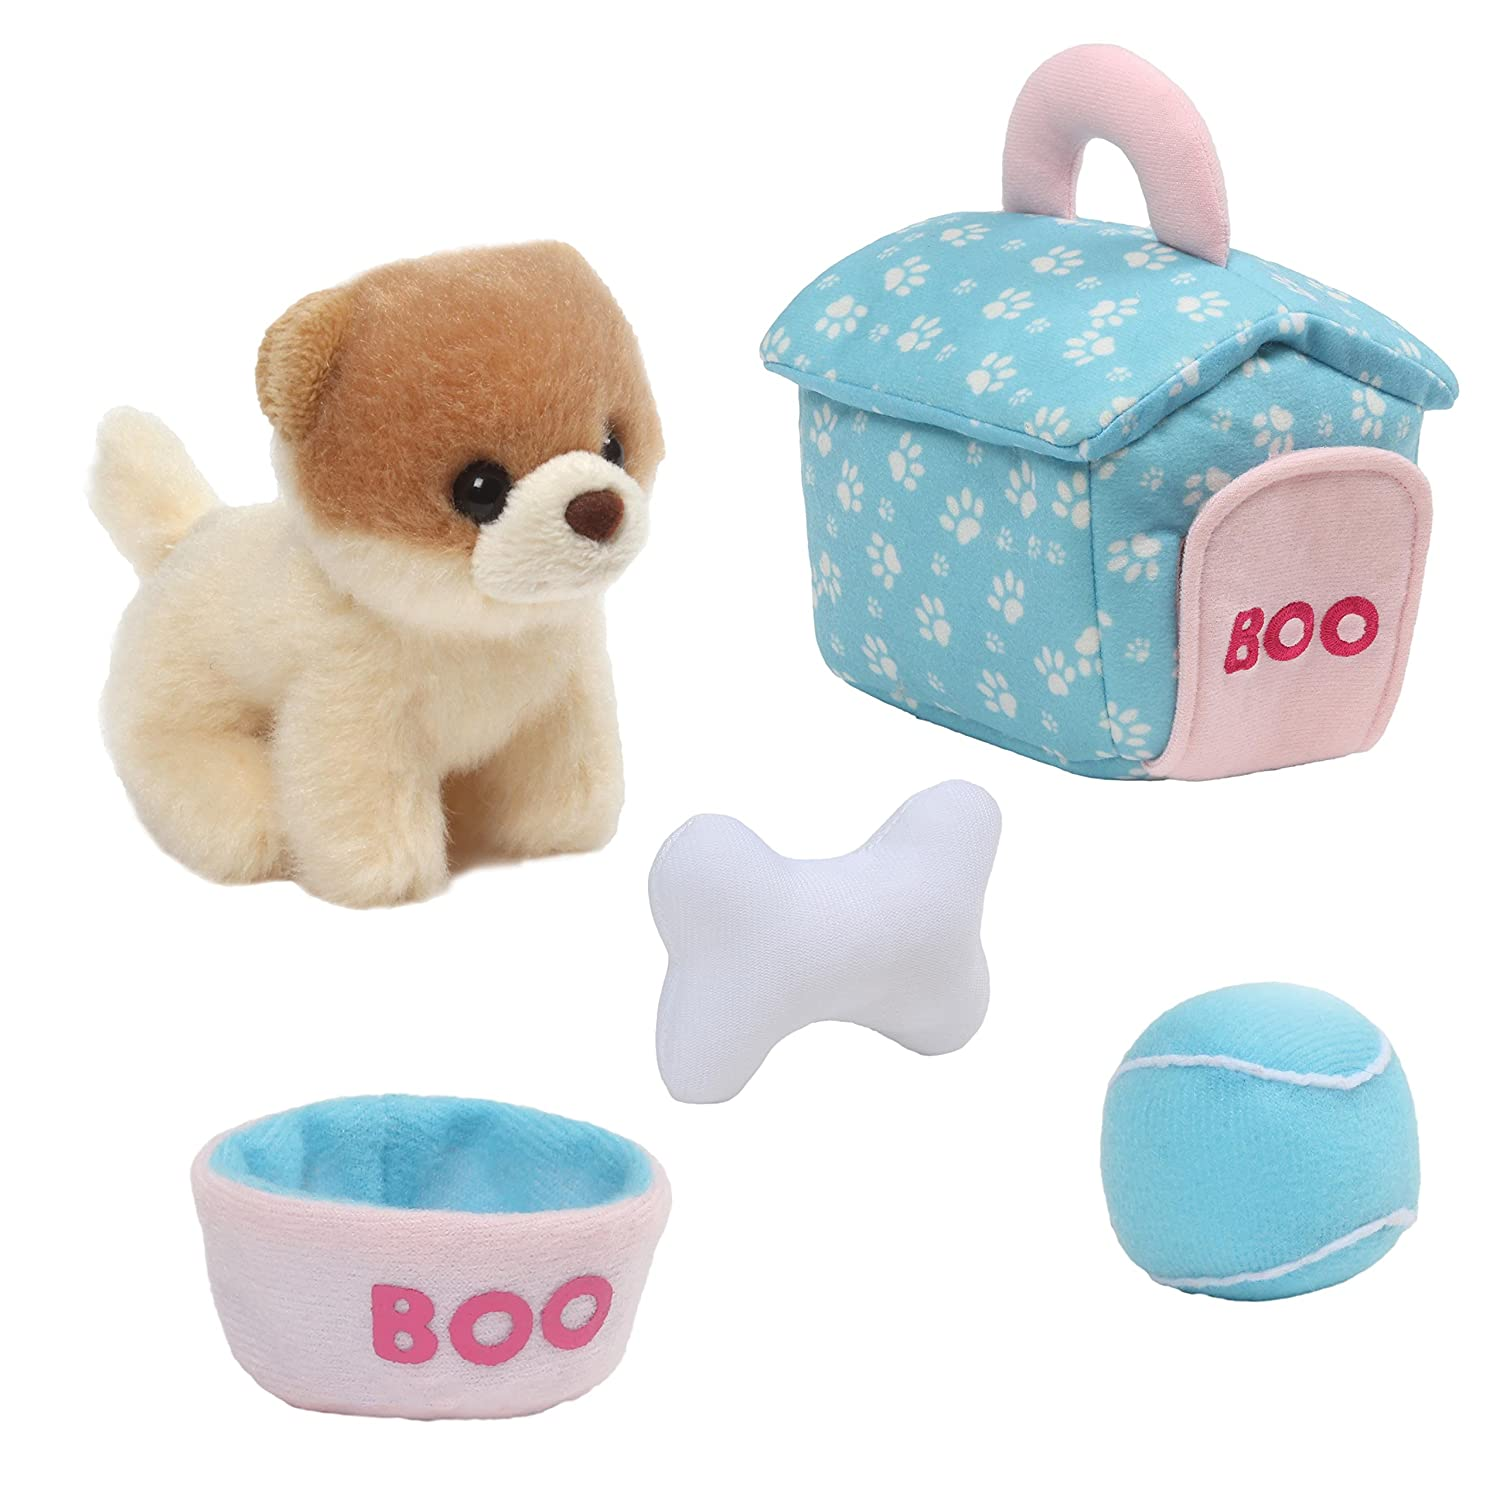 Enesco Gund Peluche Boo Play Set,, 13x10x11.5 cm (4060010)